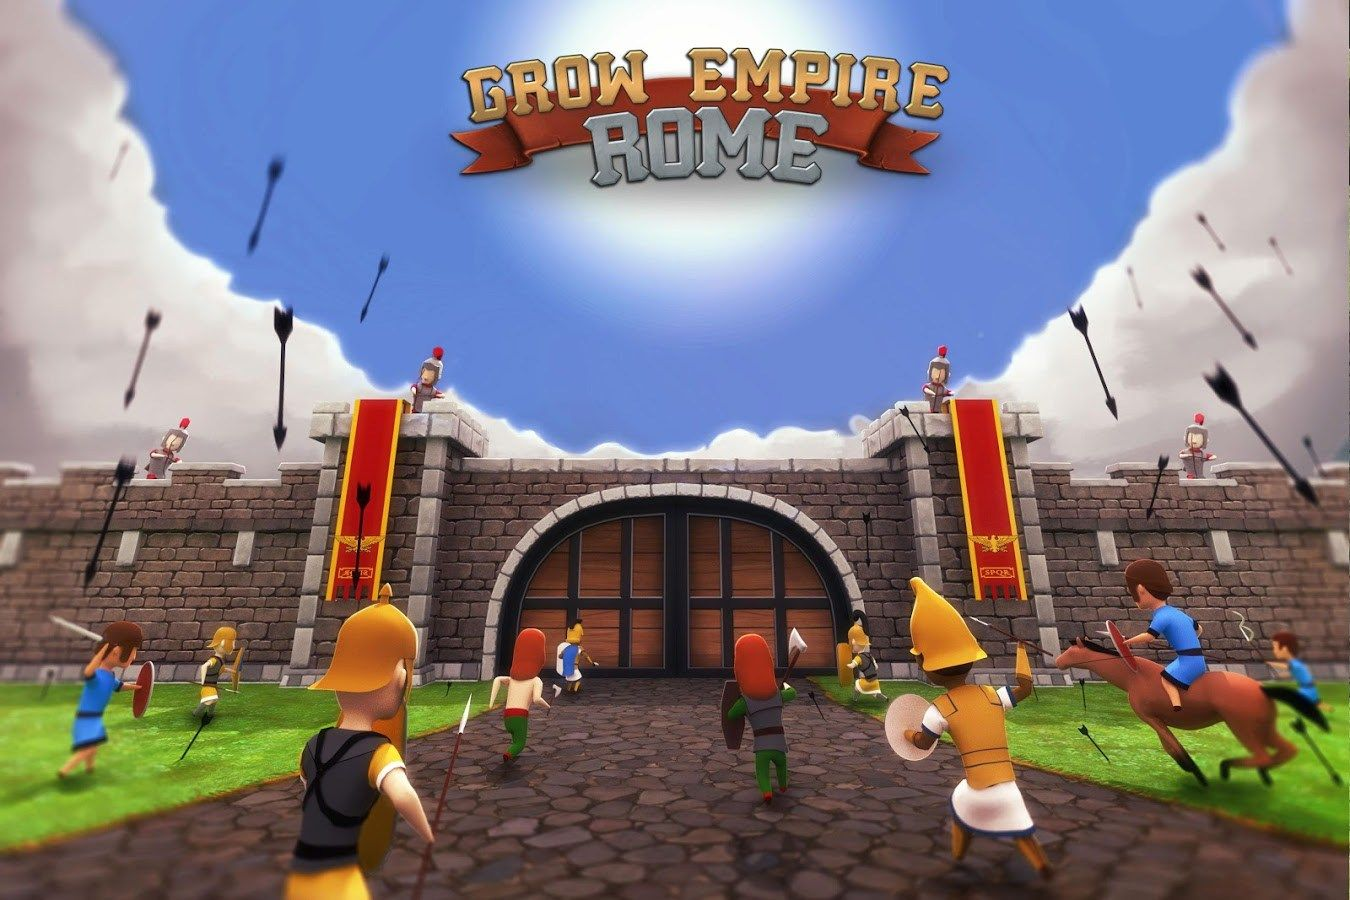 Grow Empire Rome On Your Windows PC / Mac Download And